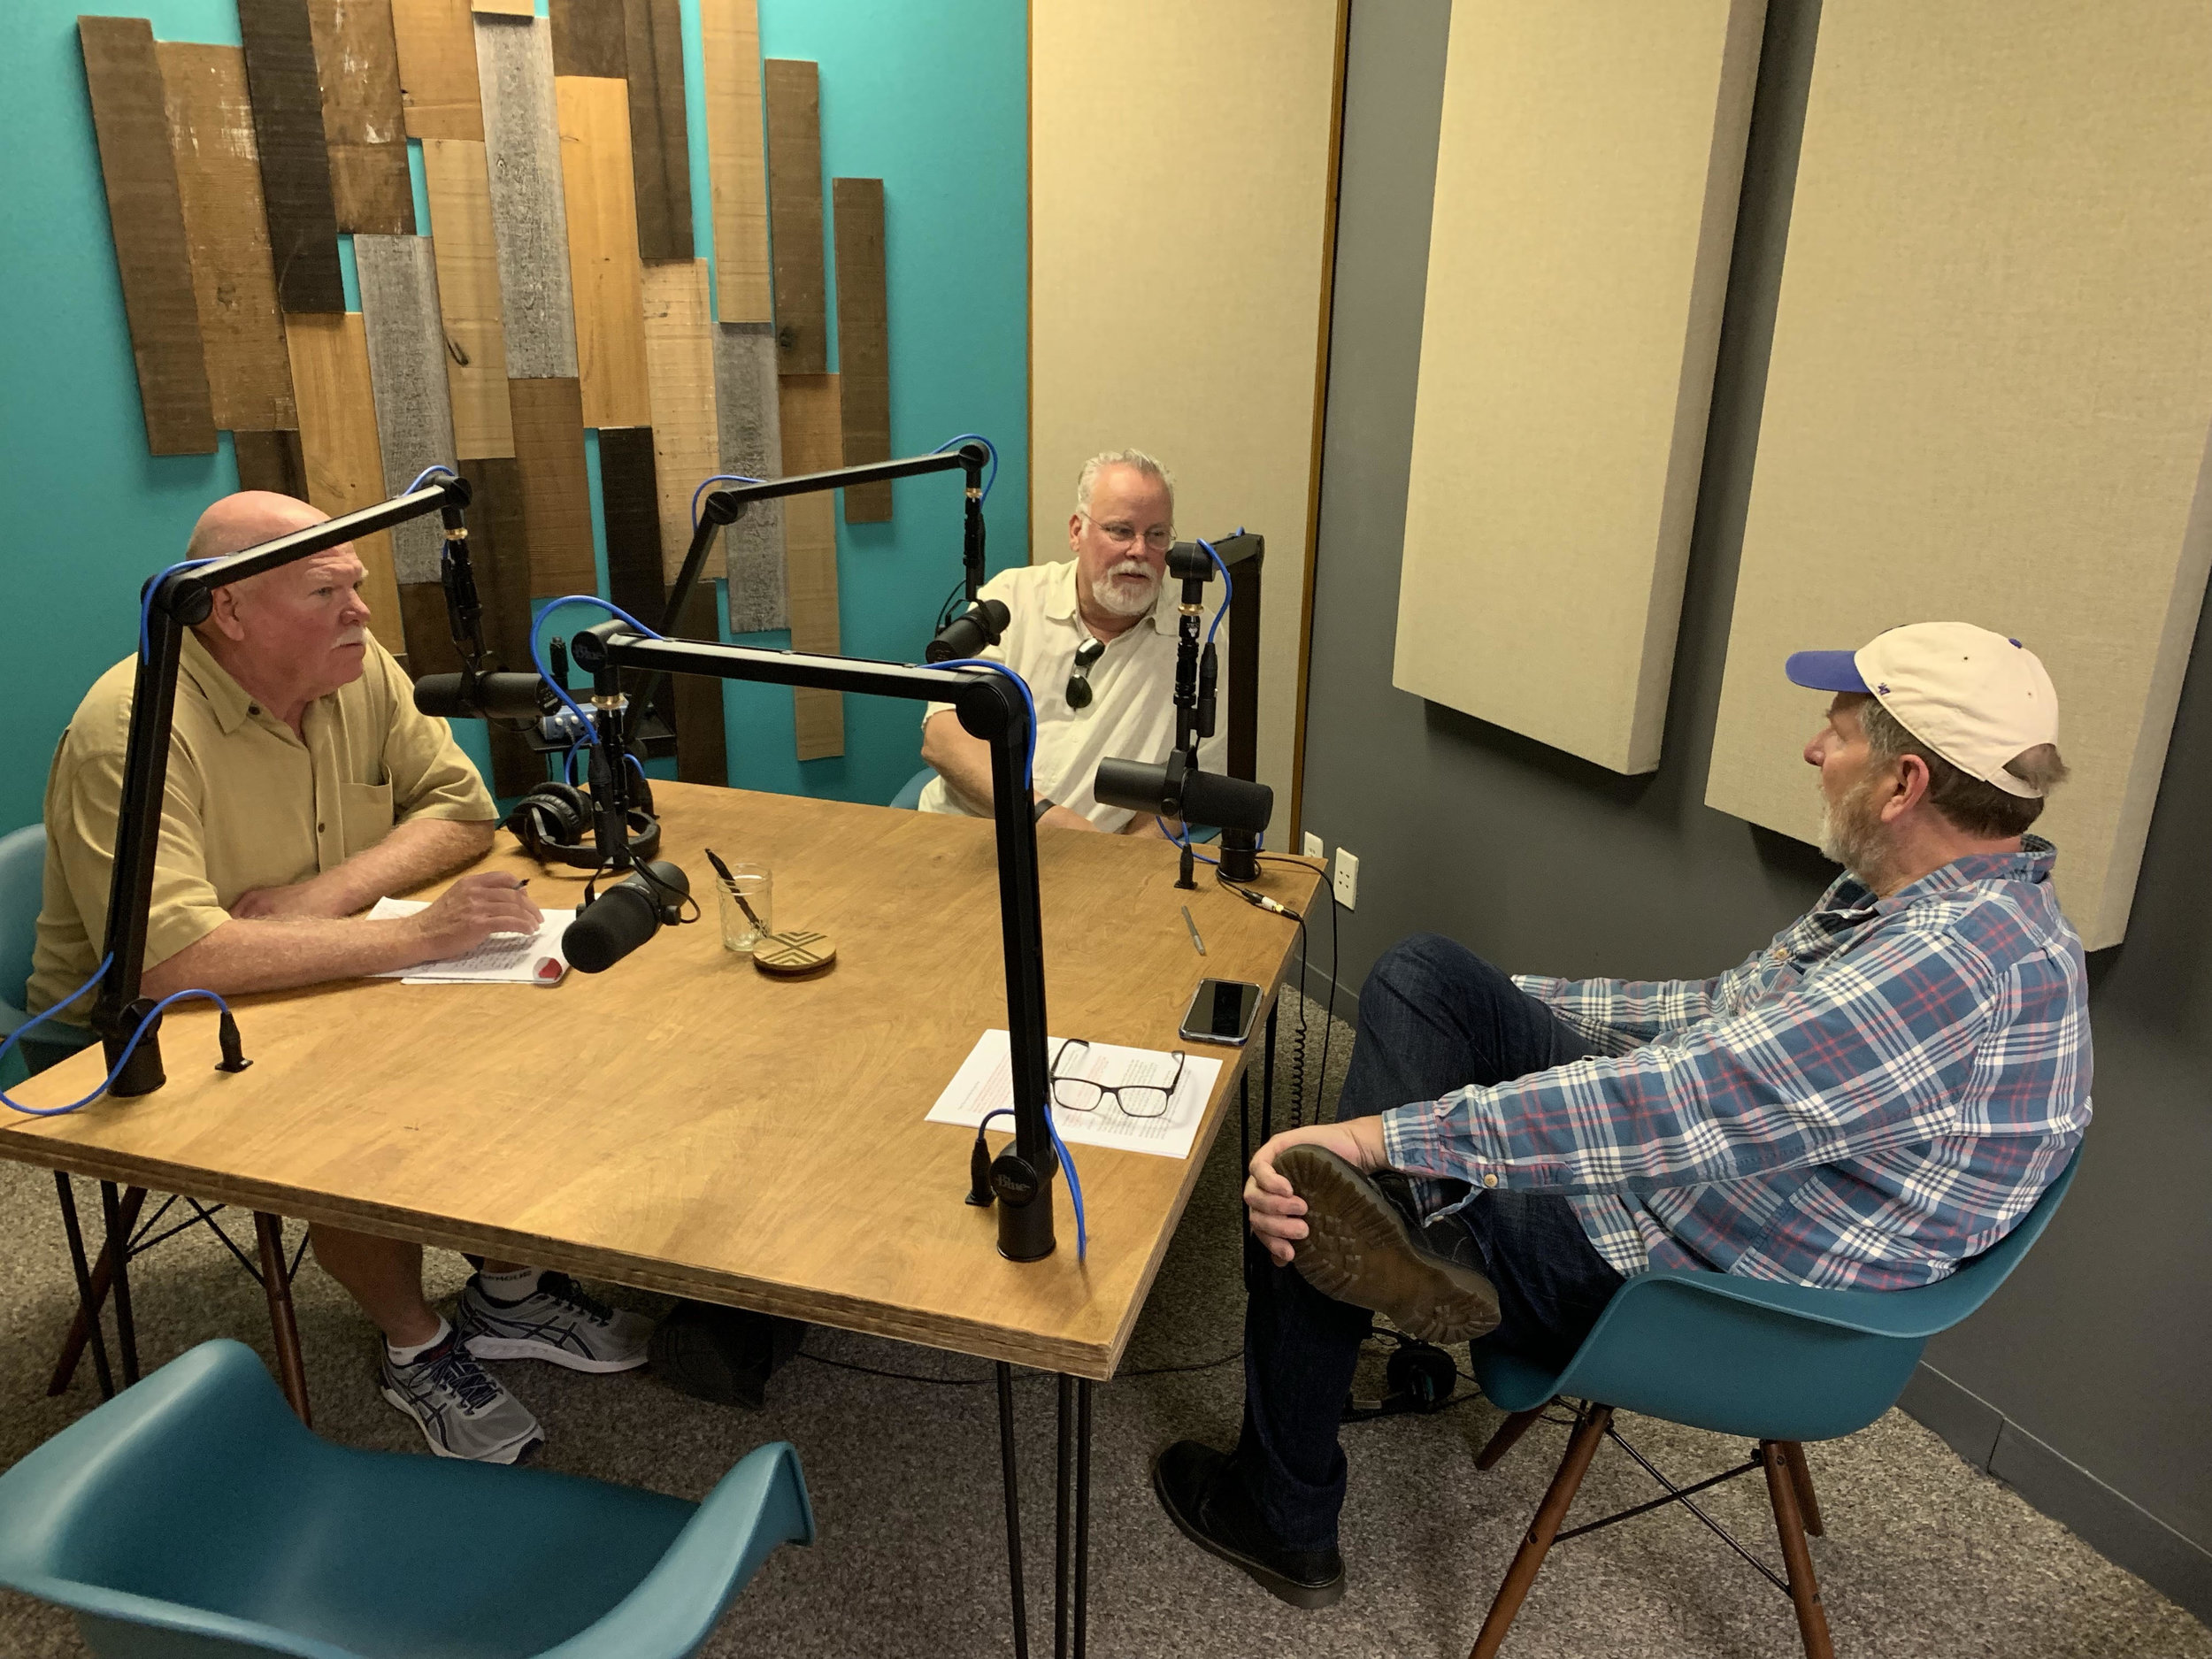 Detective Rick Jackson, Michael Connelly, and actor Scott Klace in the recording studio